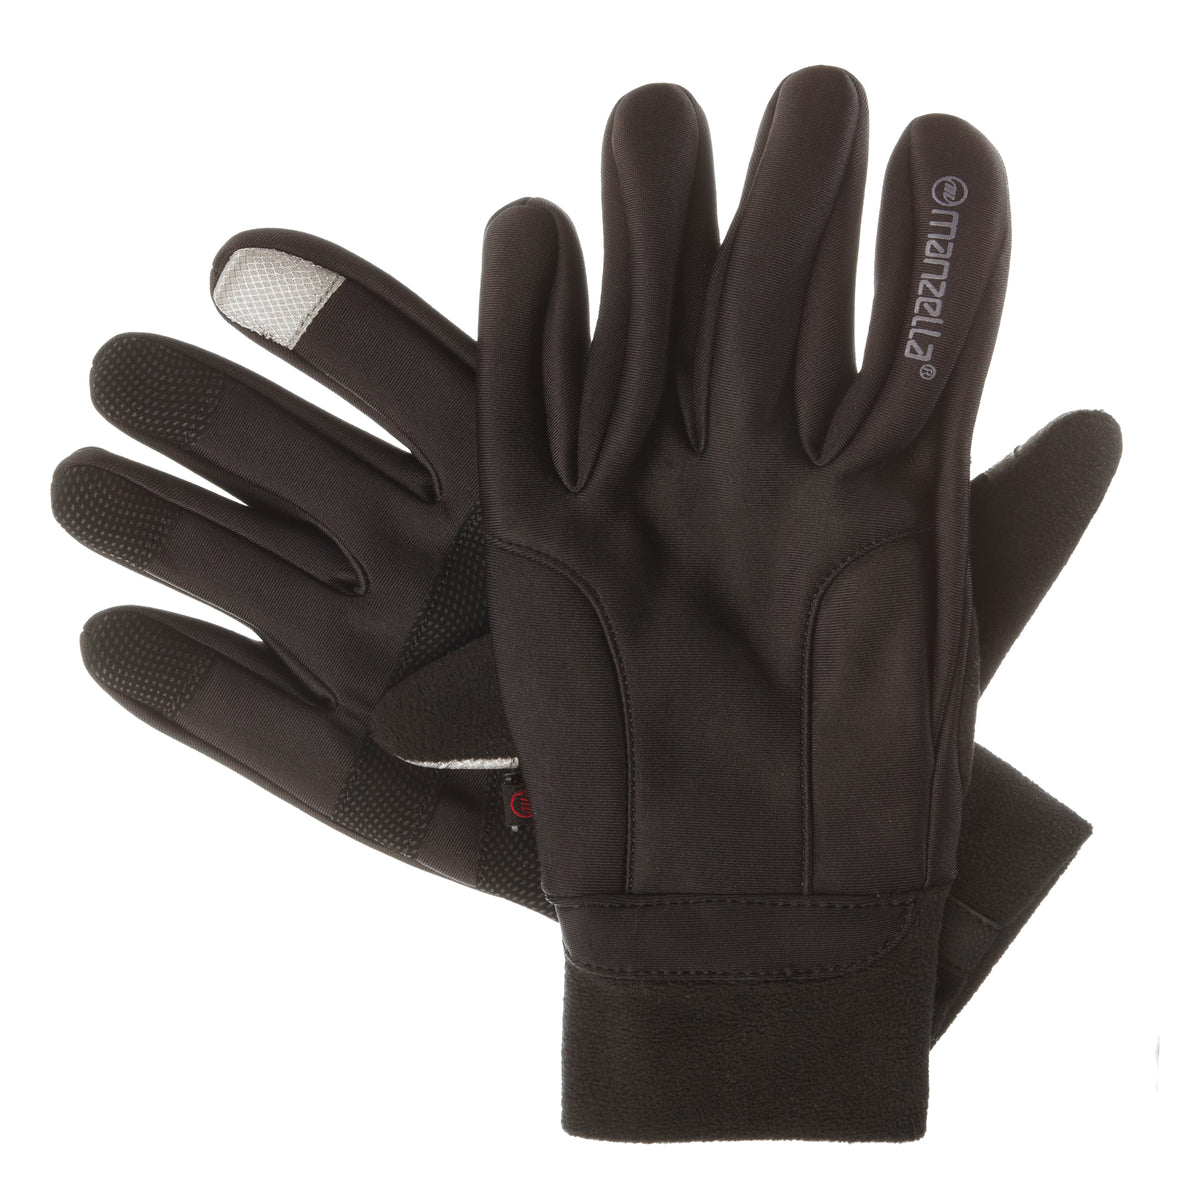 Manzella ALL ELEMENTS 2.5 TOUCHTIP Sport Gloves for Women